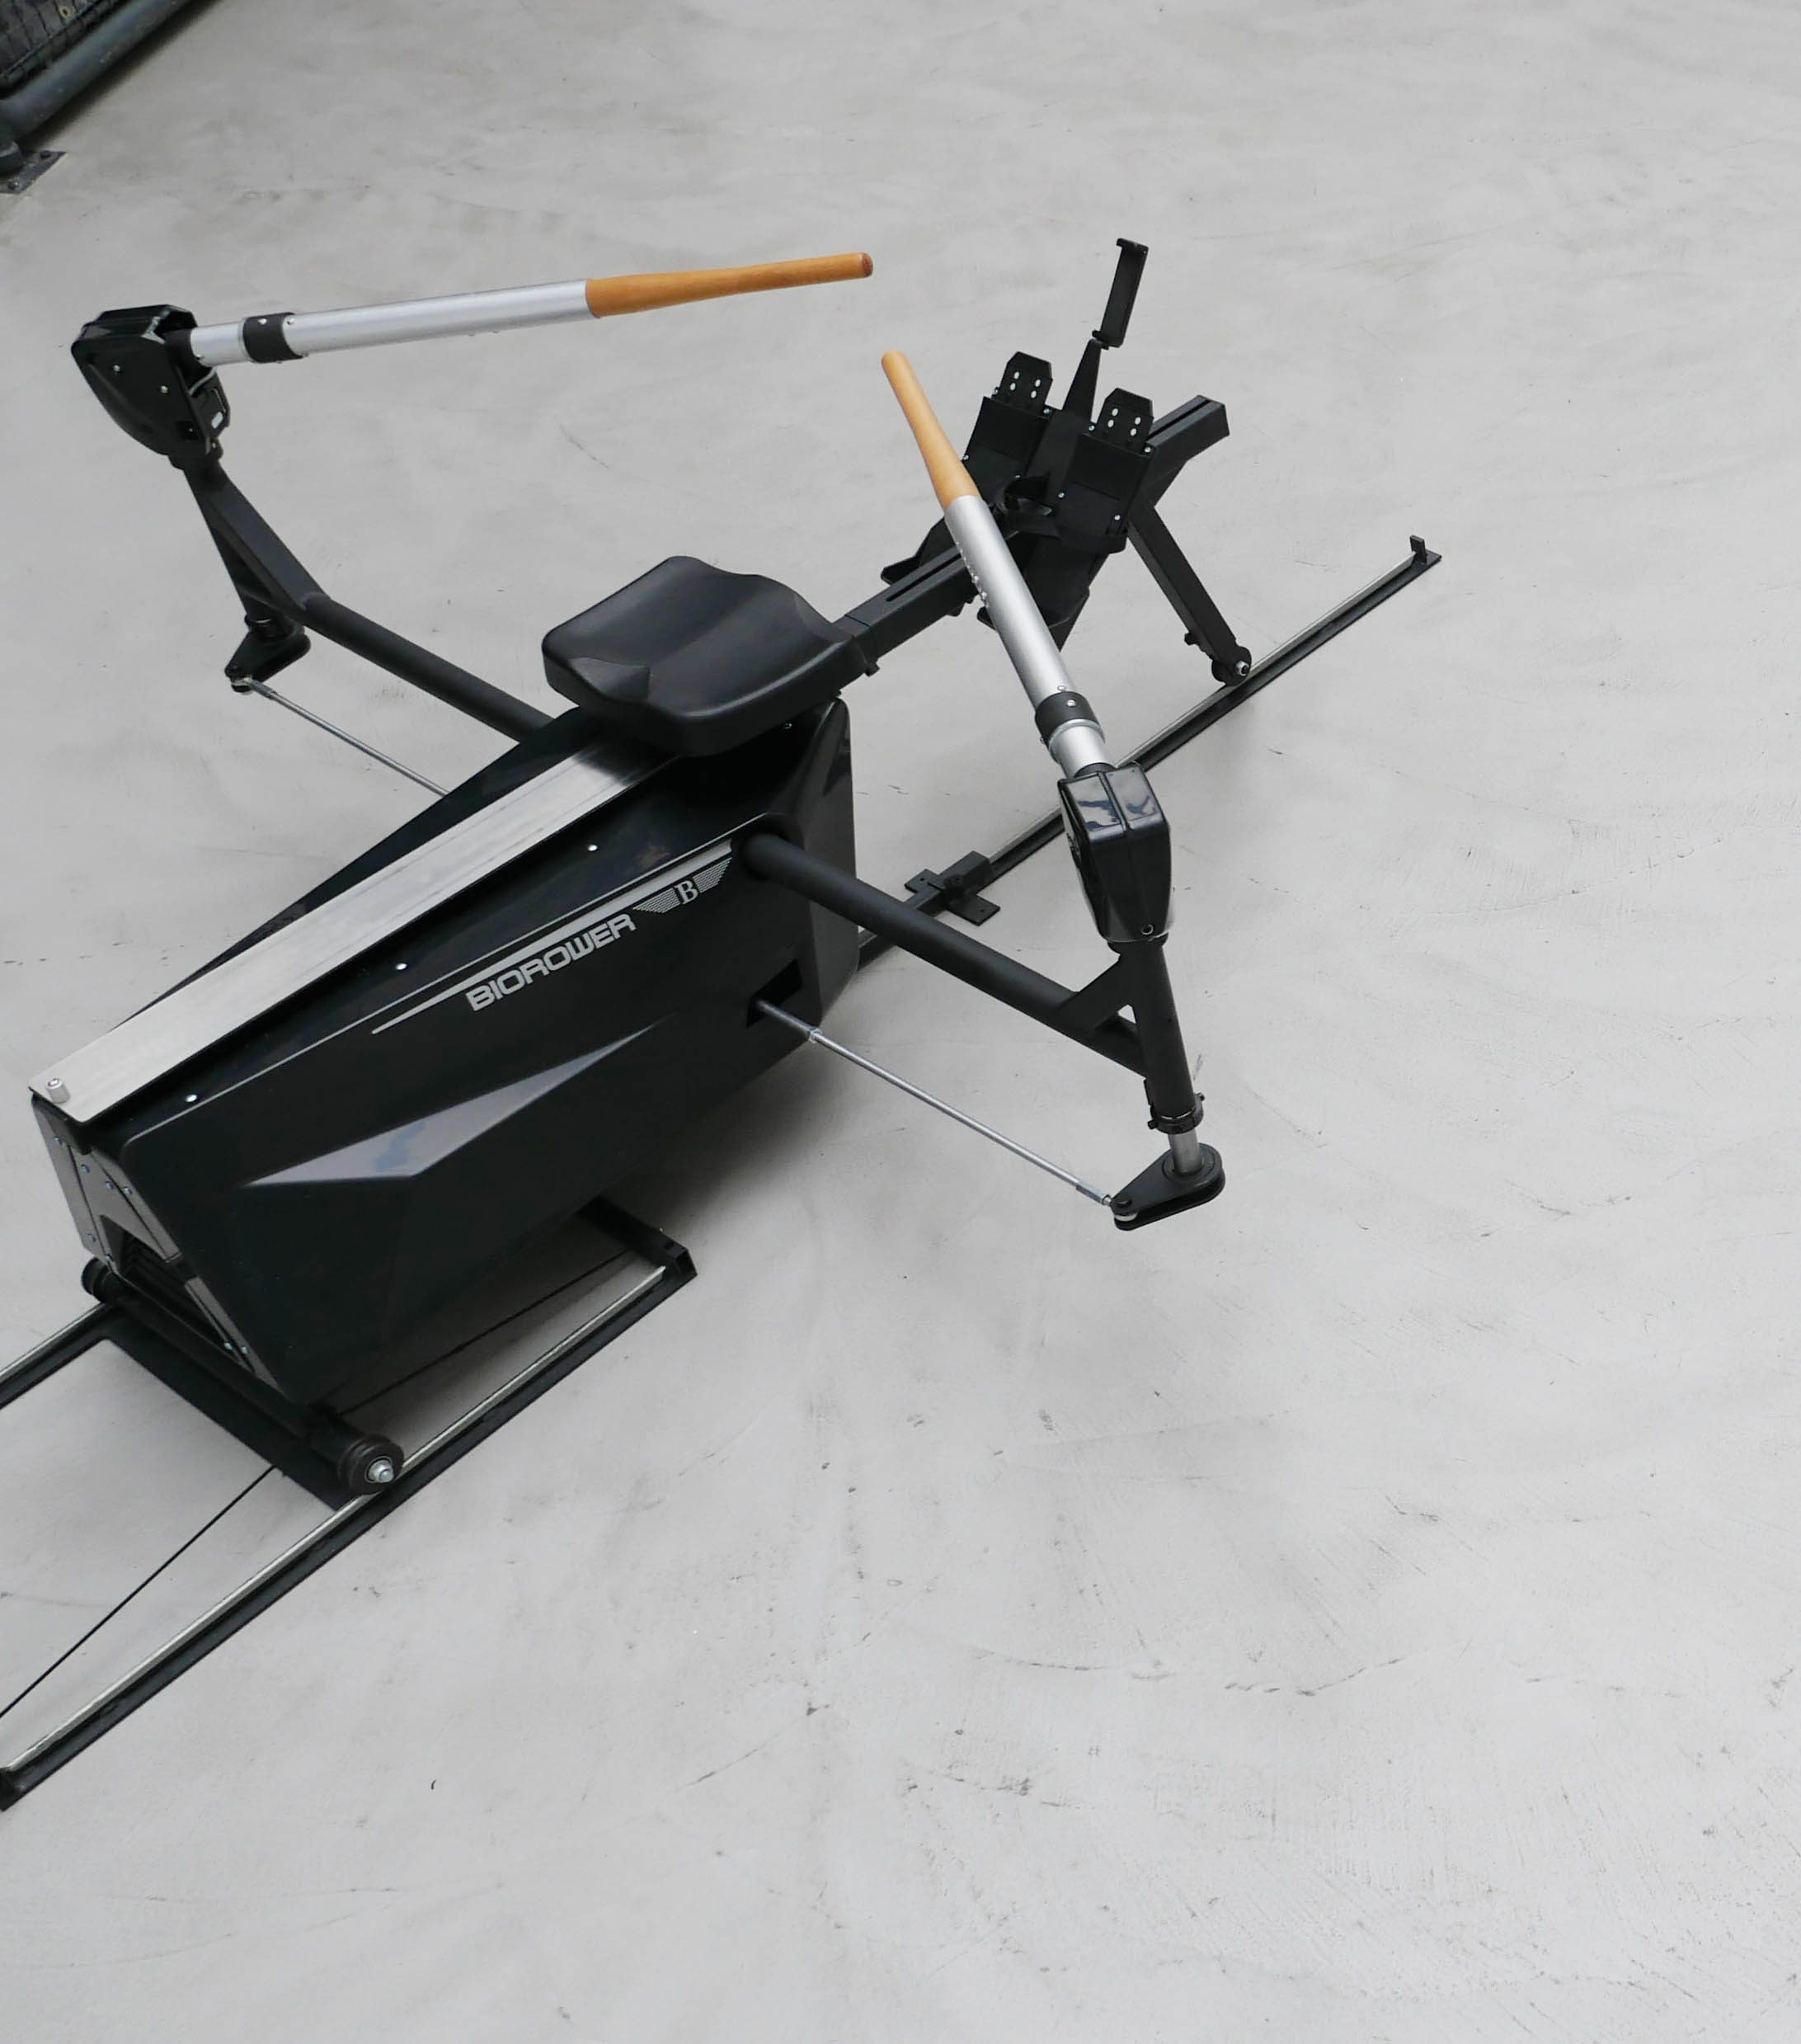 The Biorower S1club is the most realistic indoor sculling experience